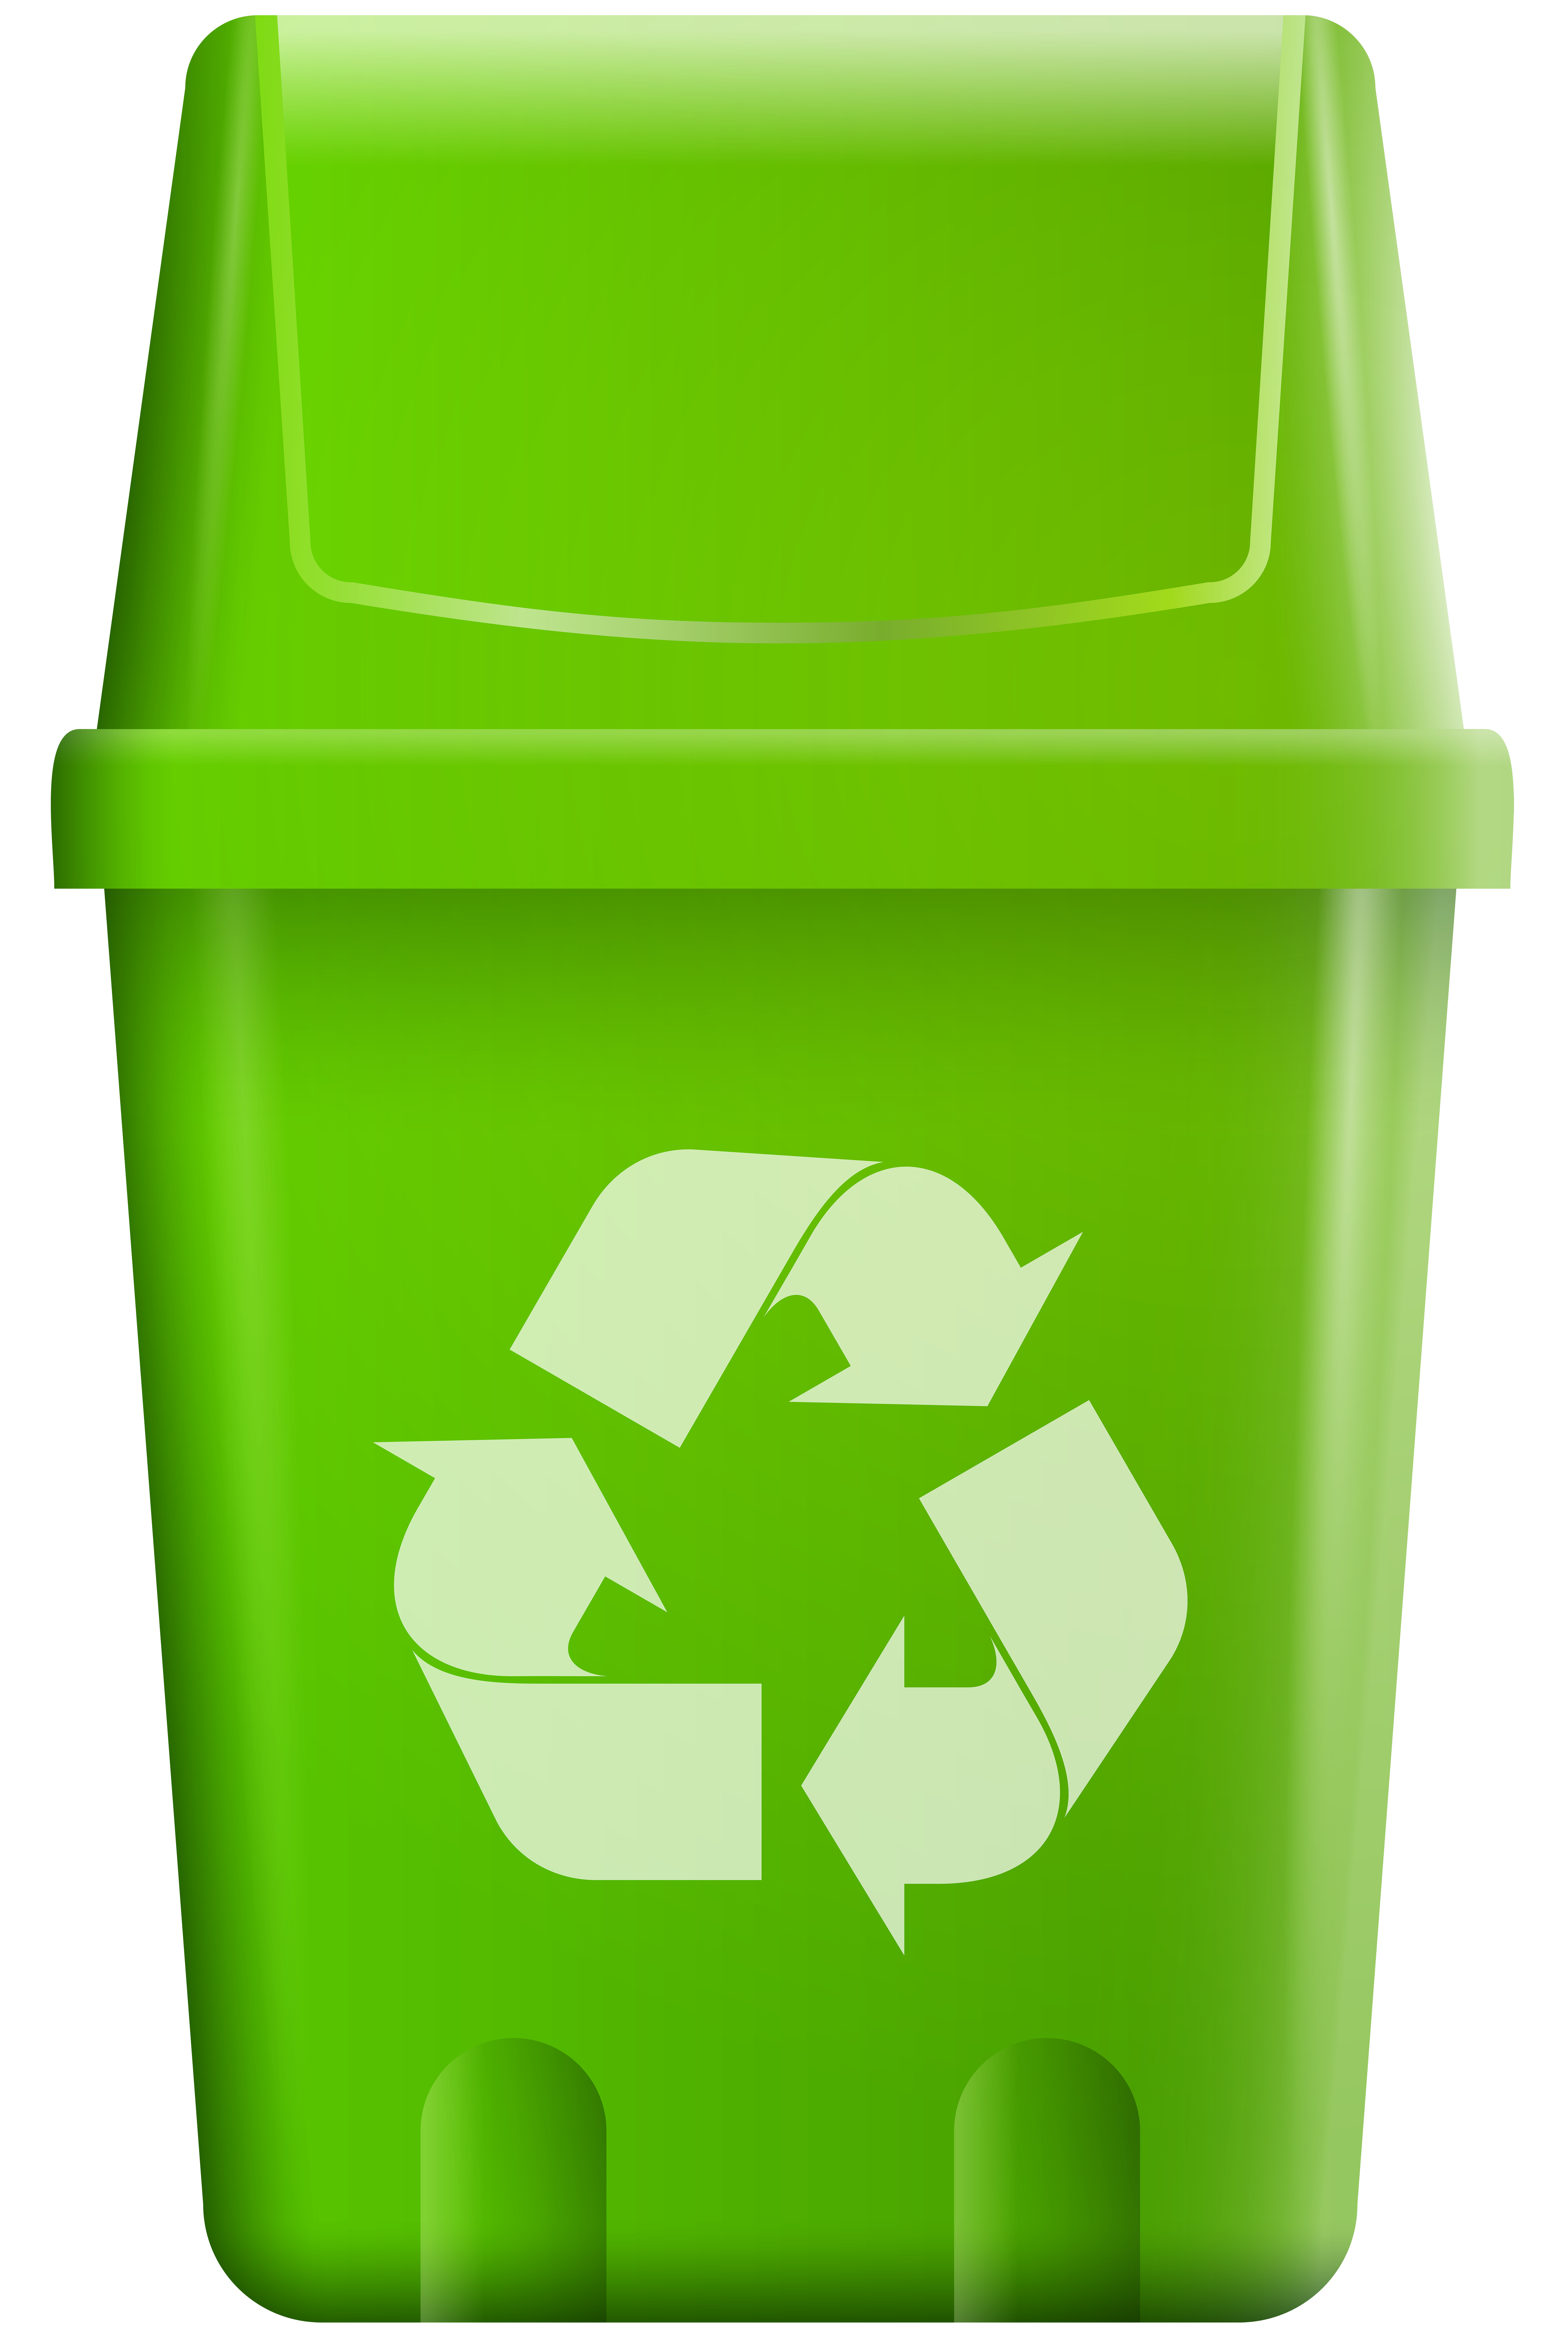 clip art transparent library Trash bin with recycle. Trashcan clipart recycling box.